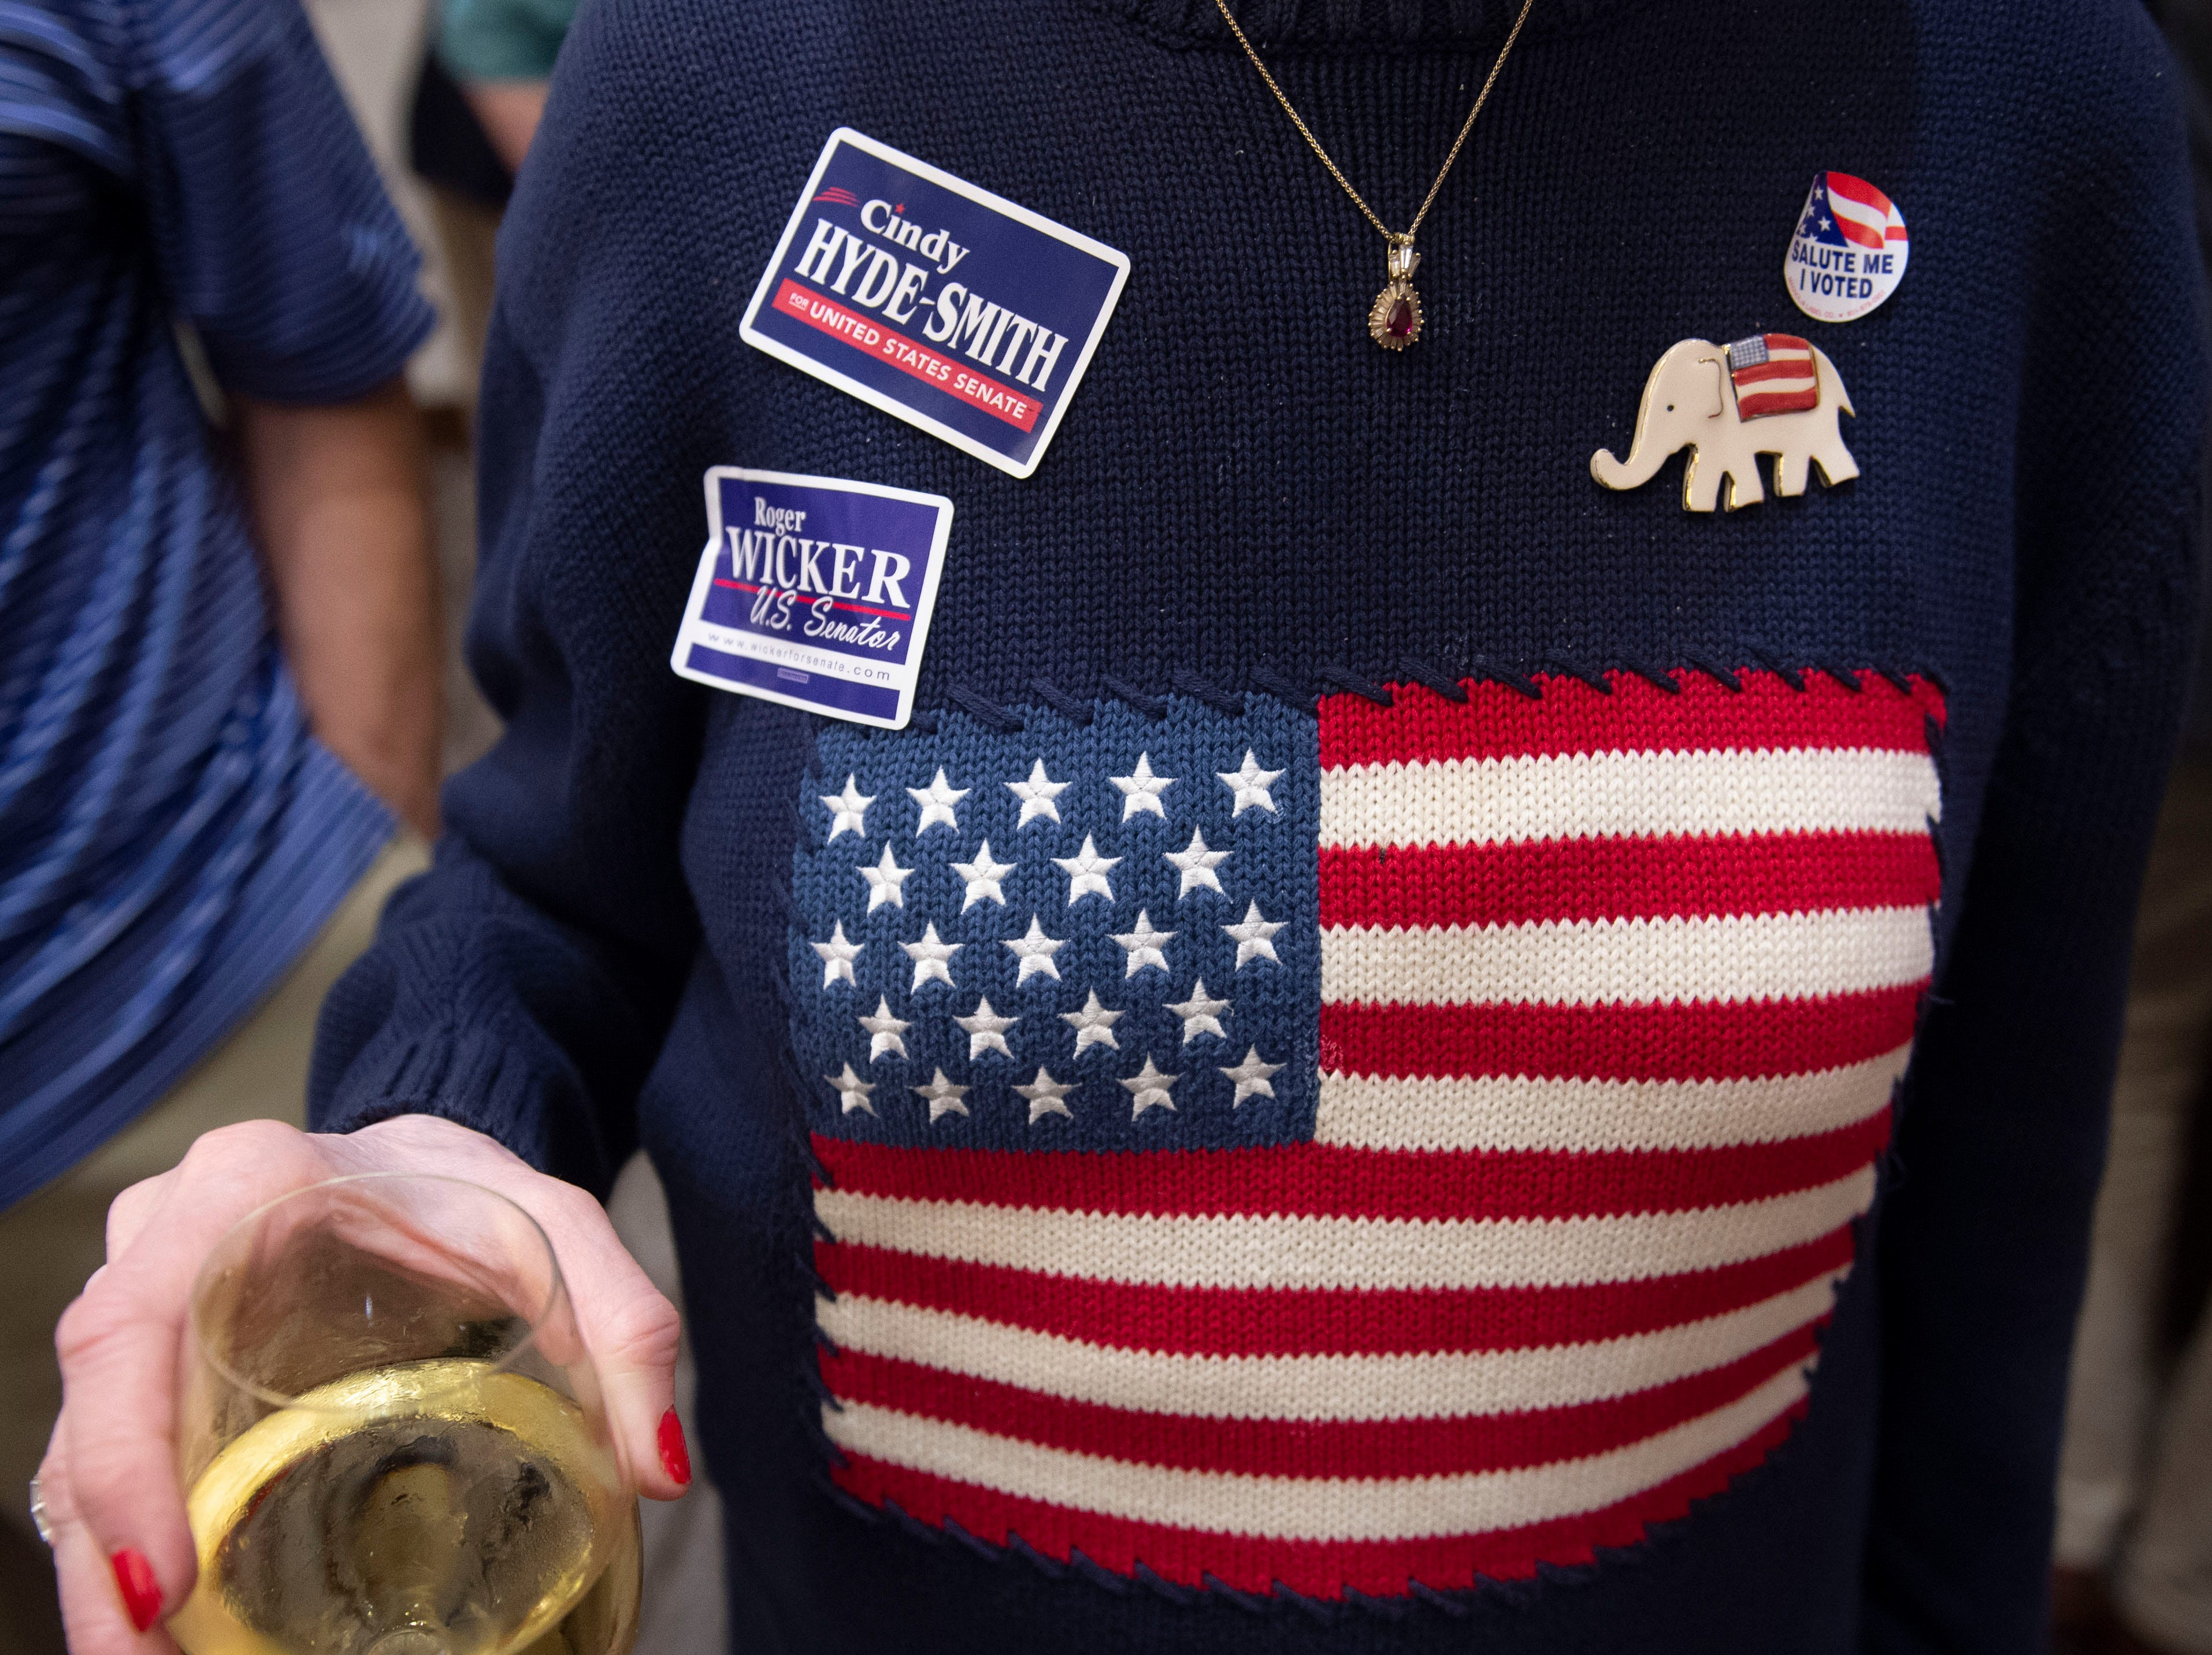 Election night swag and bling abounds at the Westin hotel based party for republican candidate senators Hyde-Smith and Wicker. Jackson, Miss. Tuesday, Nov. 6, 2018.